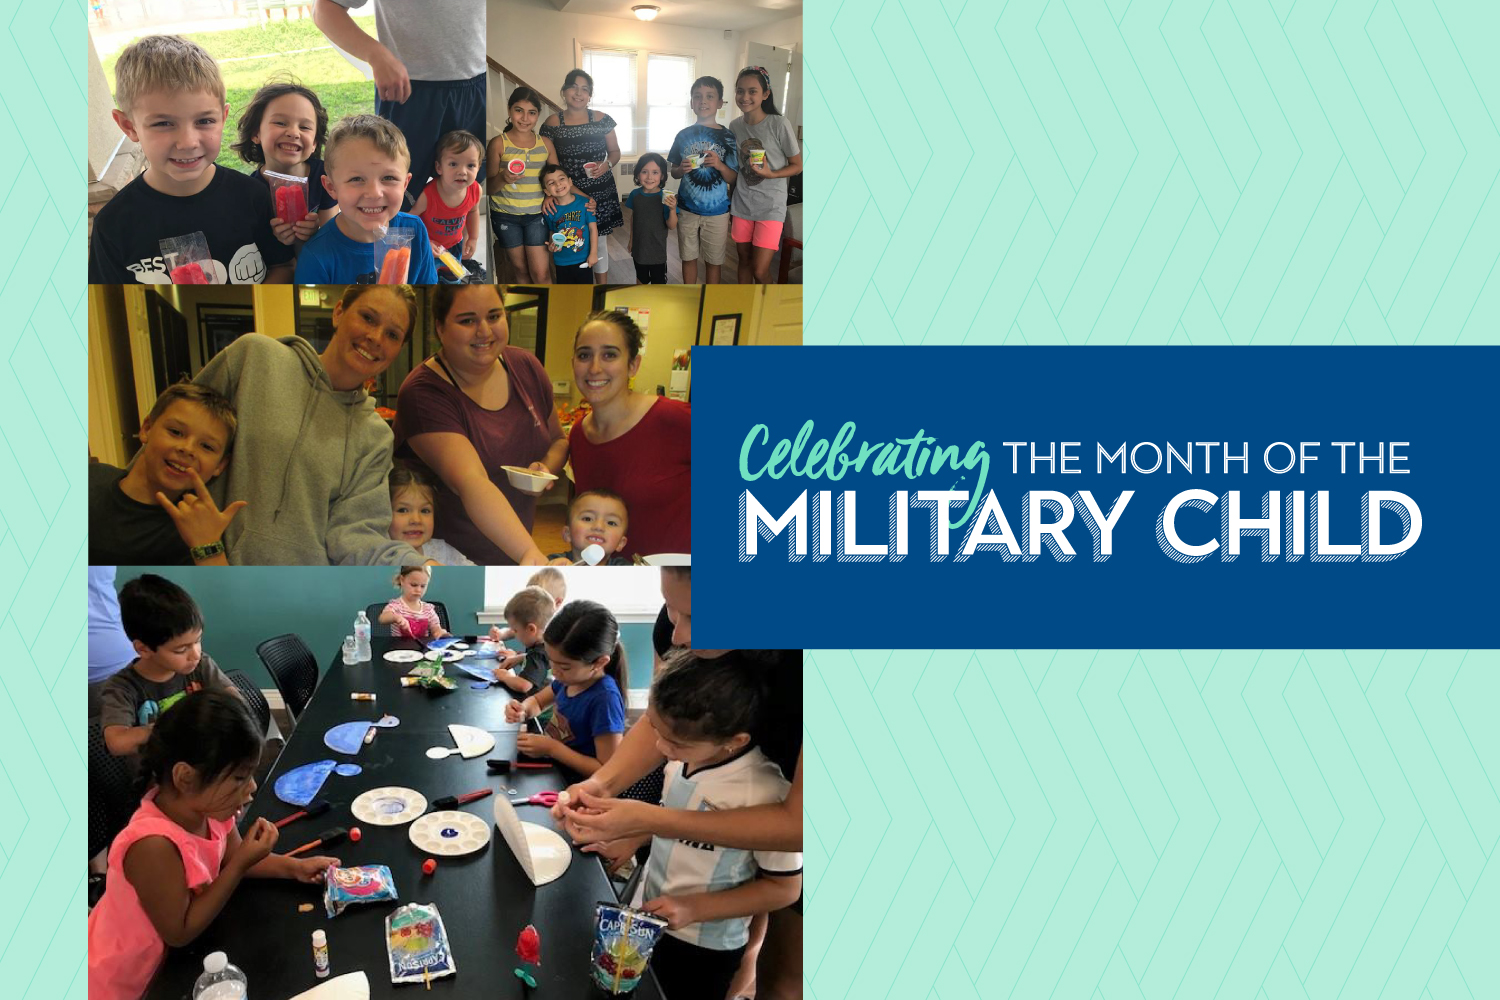 Balfour Beatty Communities celebrates Month of the Military Child  at bases across the country